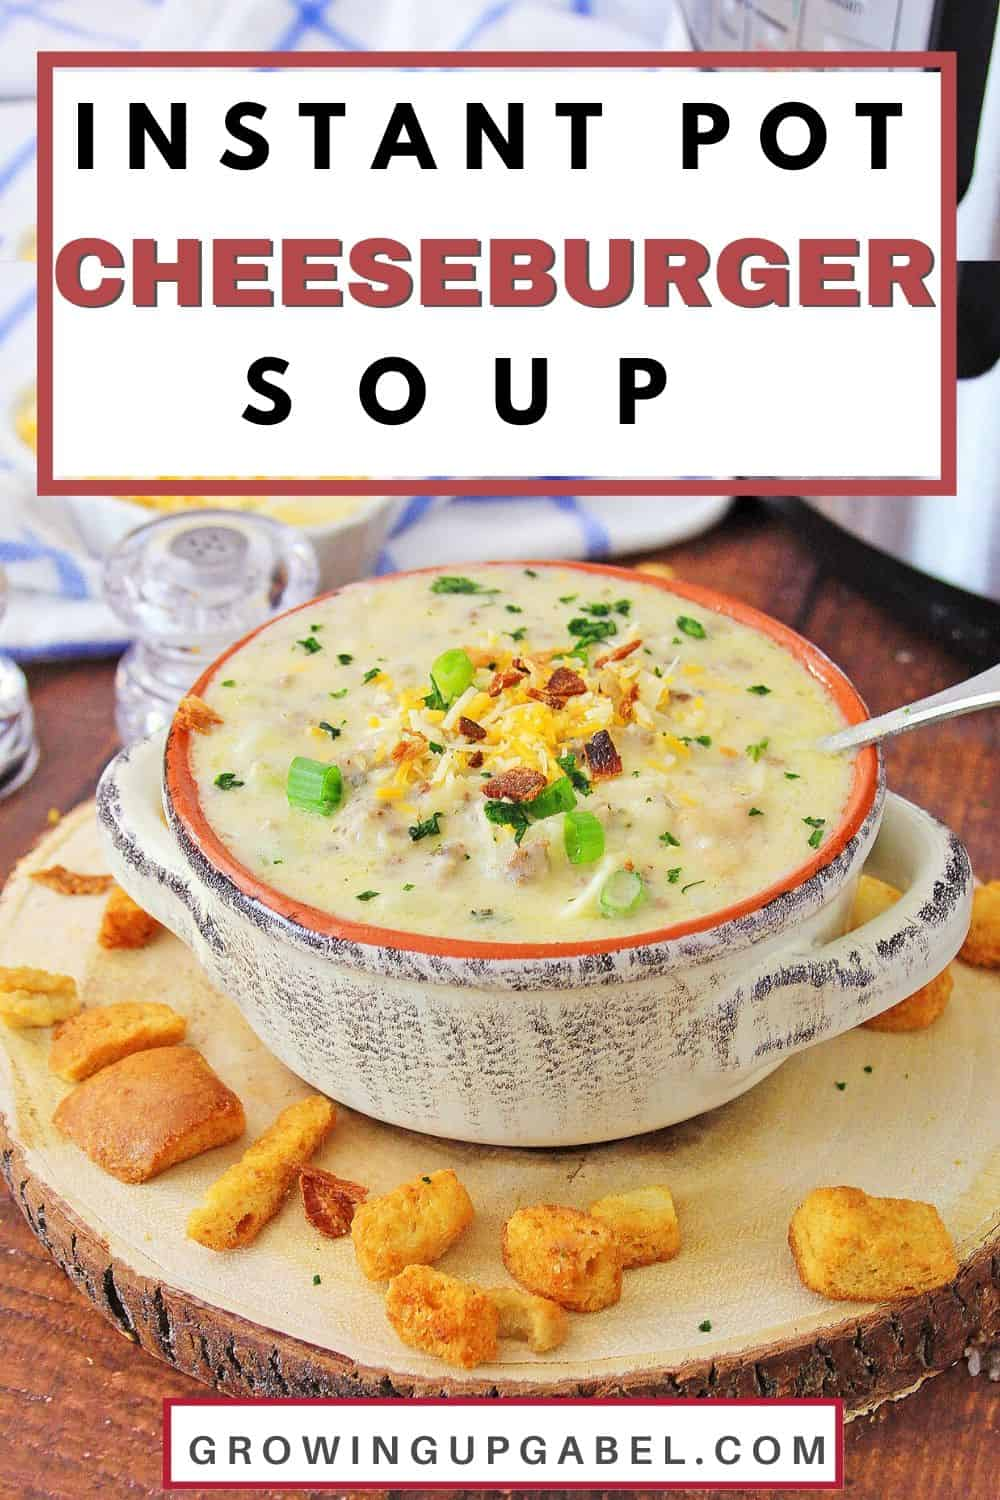 Instnat Pot cheeseburger soup in a bowl on a table with croutons